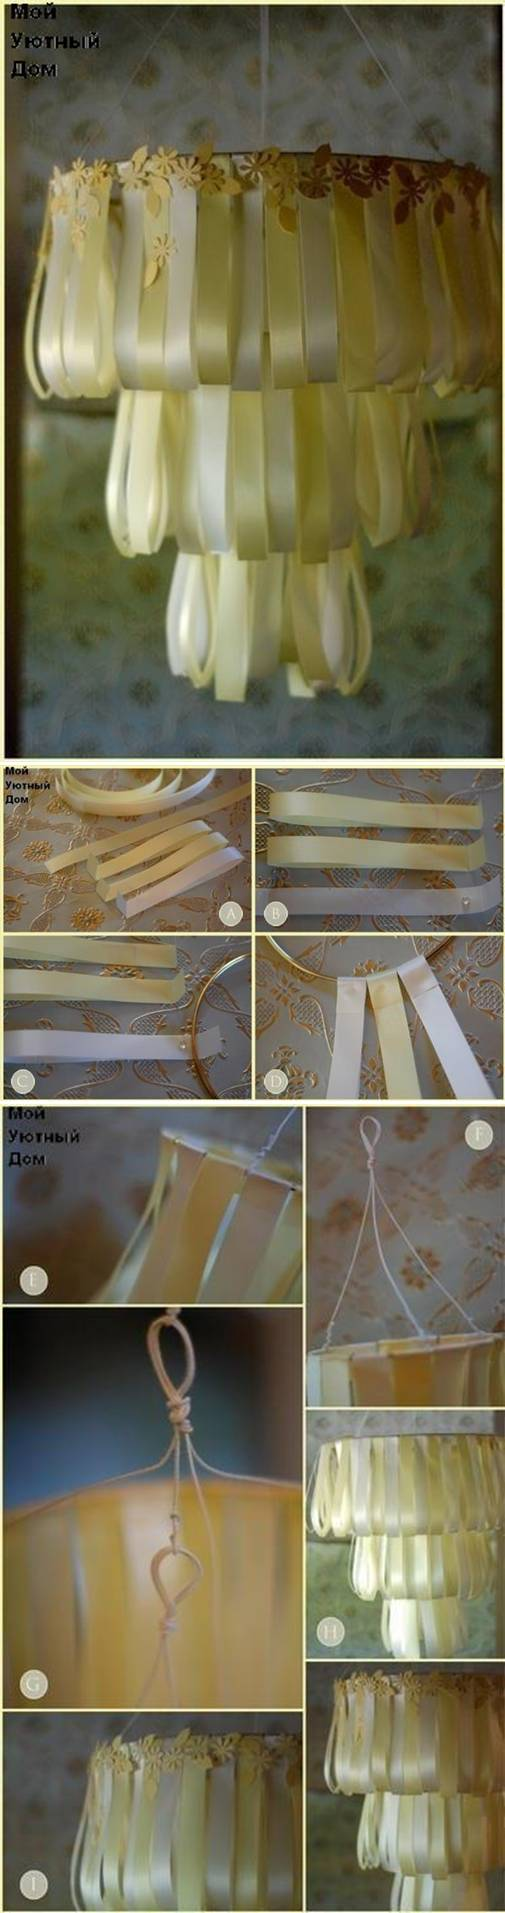 how to make a ribbion chandelier step by step